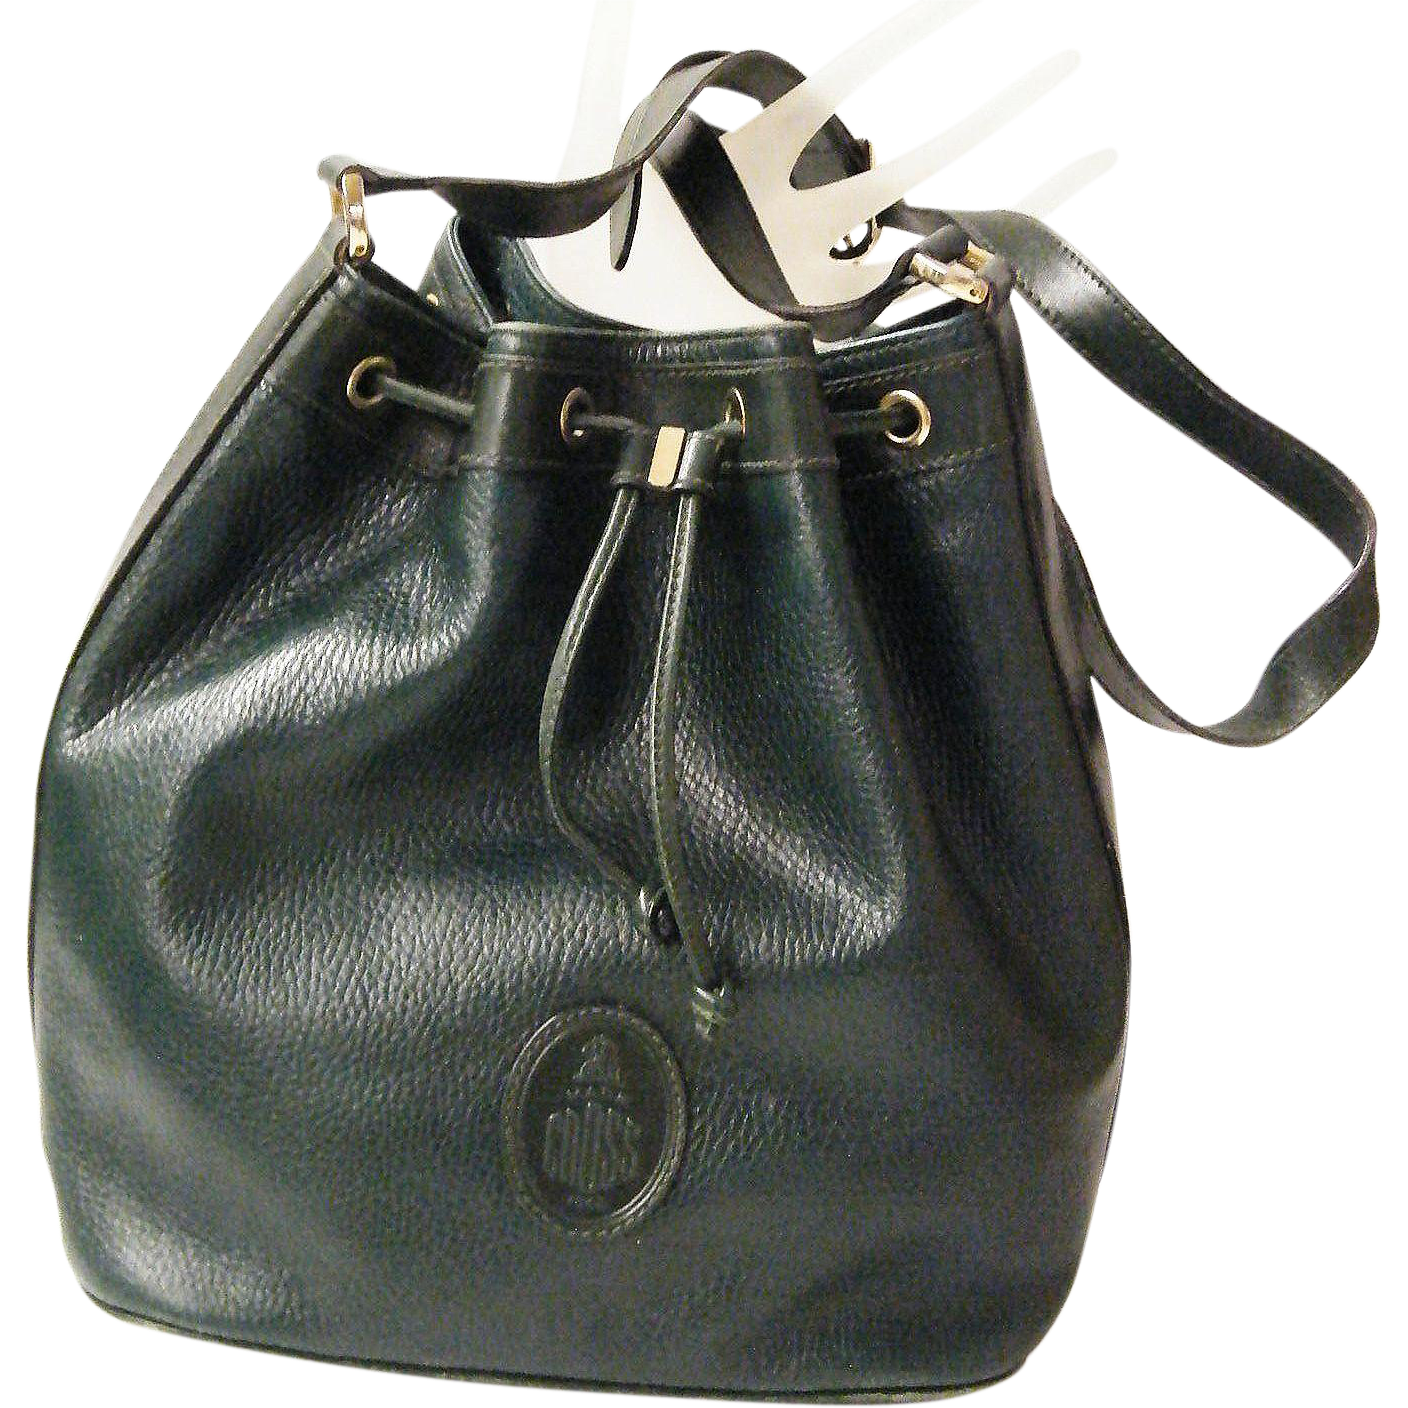 Hunter Green Mark Cross Drawstring Pebble Leather Bucket Feedbag Shoulder Bag..Excellent Condition!